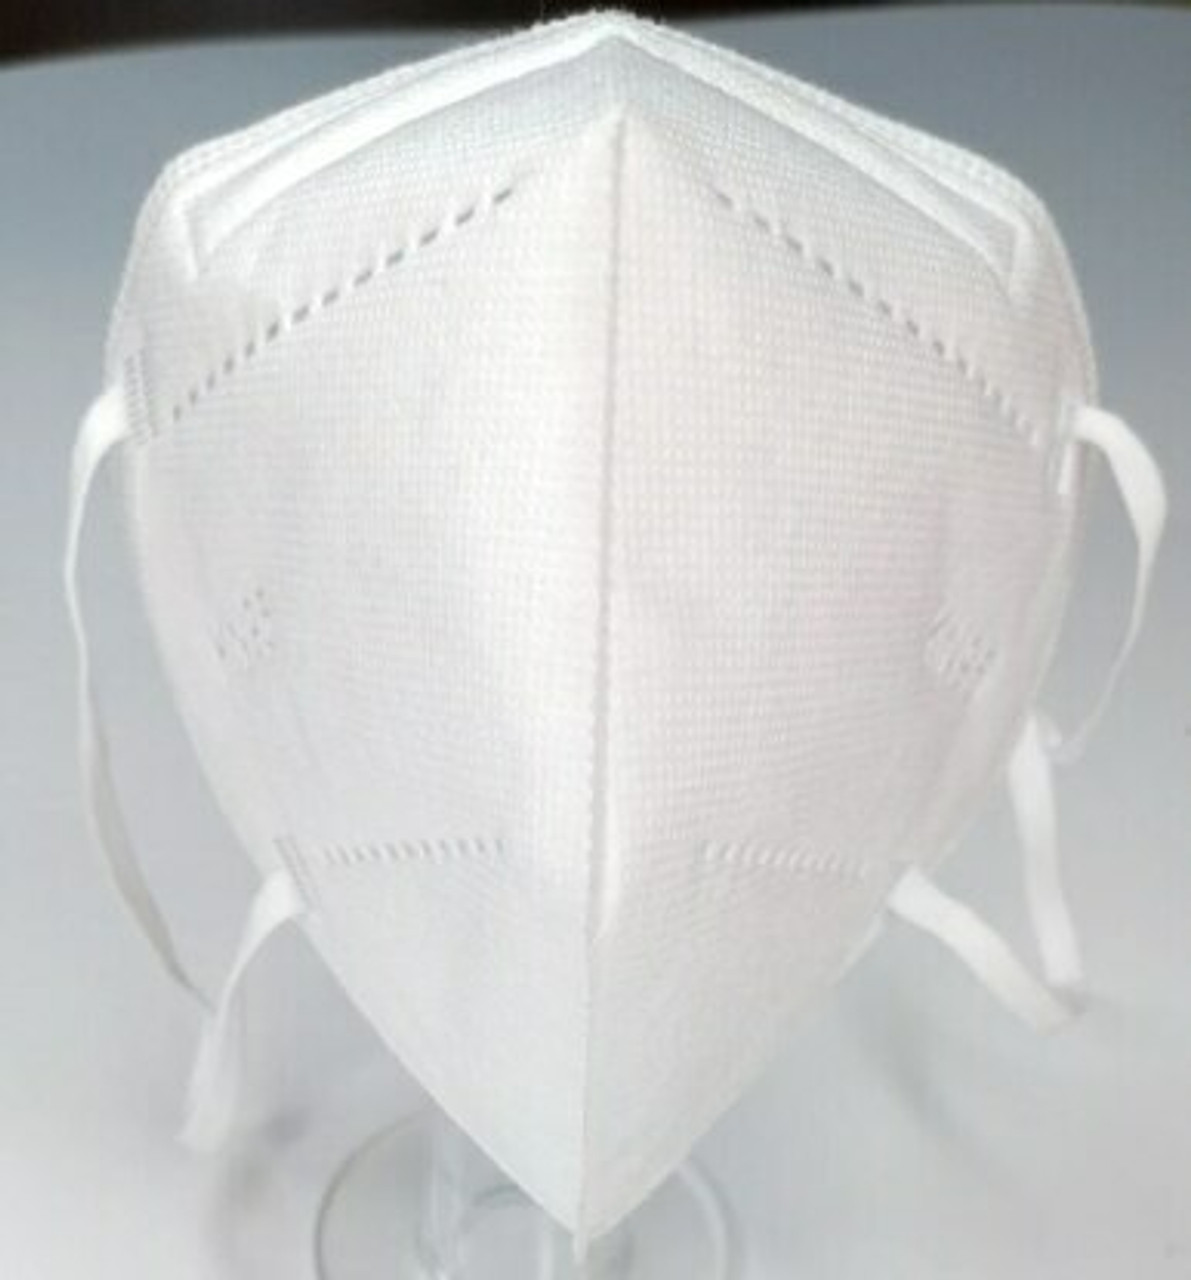 KN95 Certified MASK (Only $1.00 Each) -